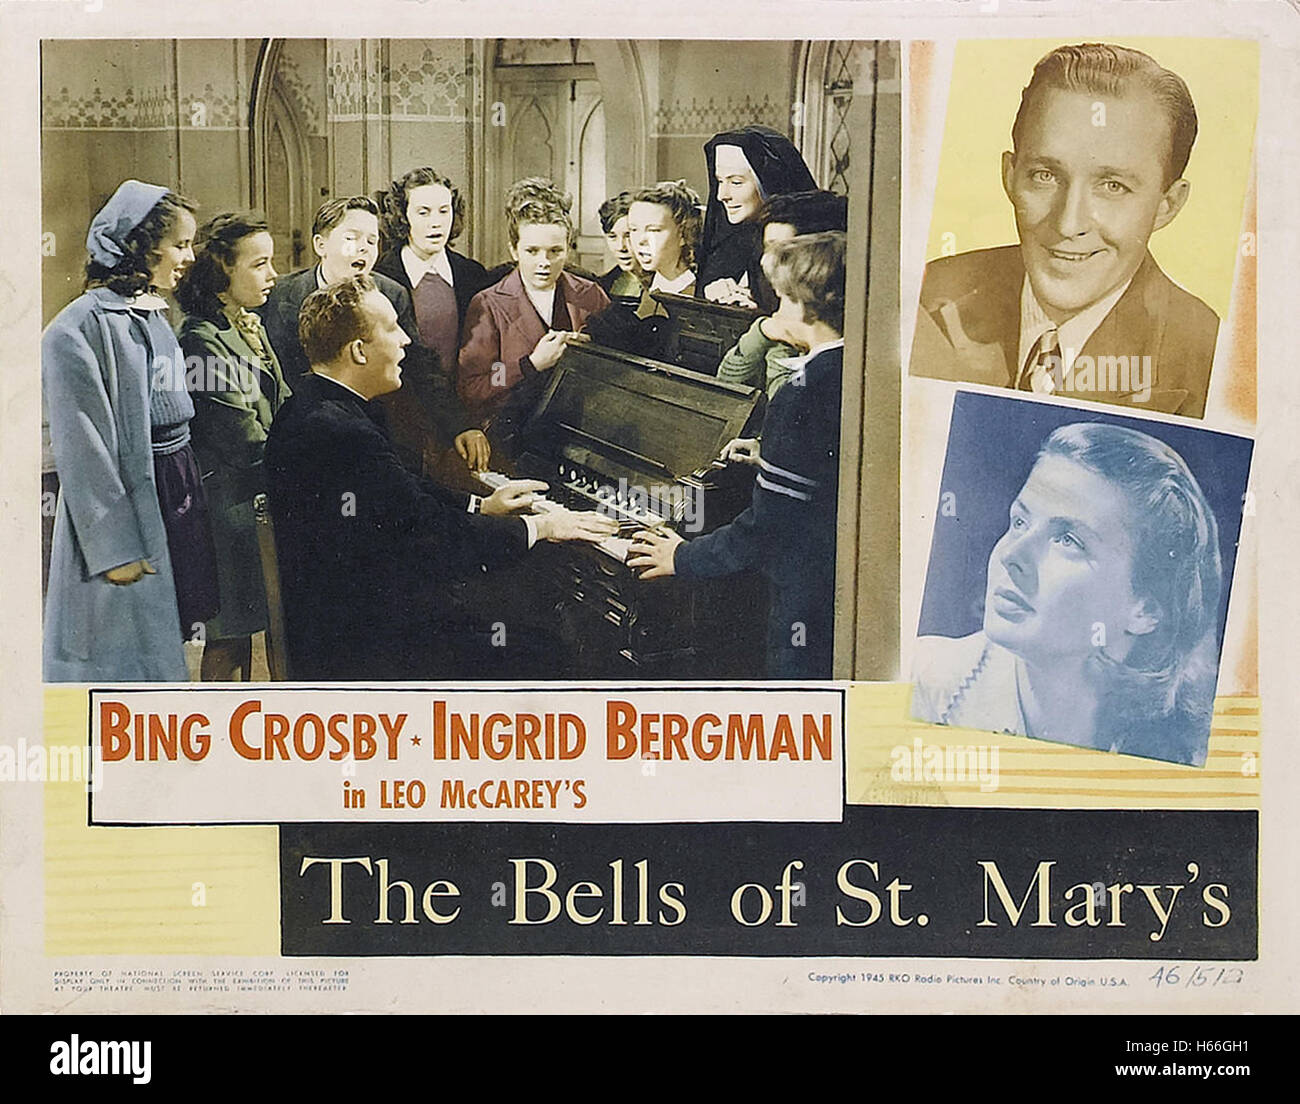 The Bells of St. Mary's - Movie Poster - - Stock Image